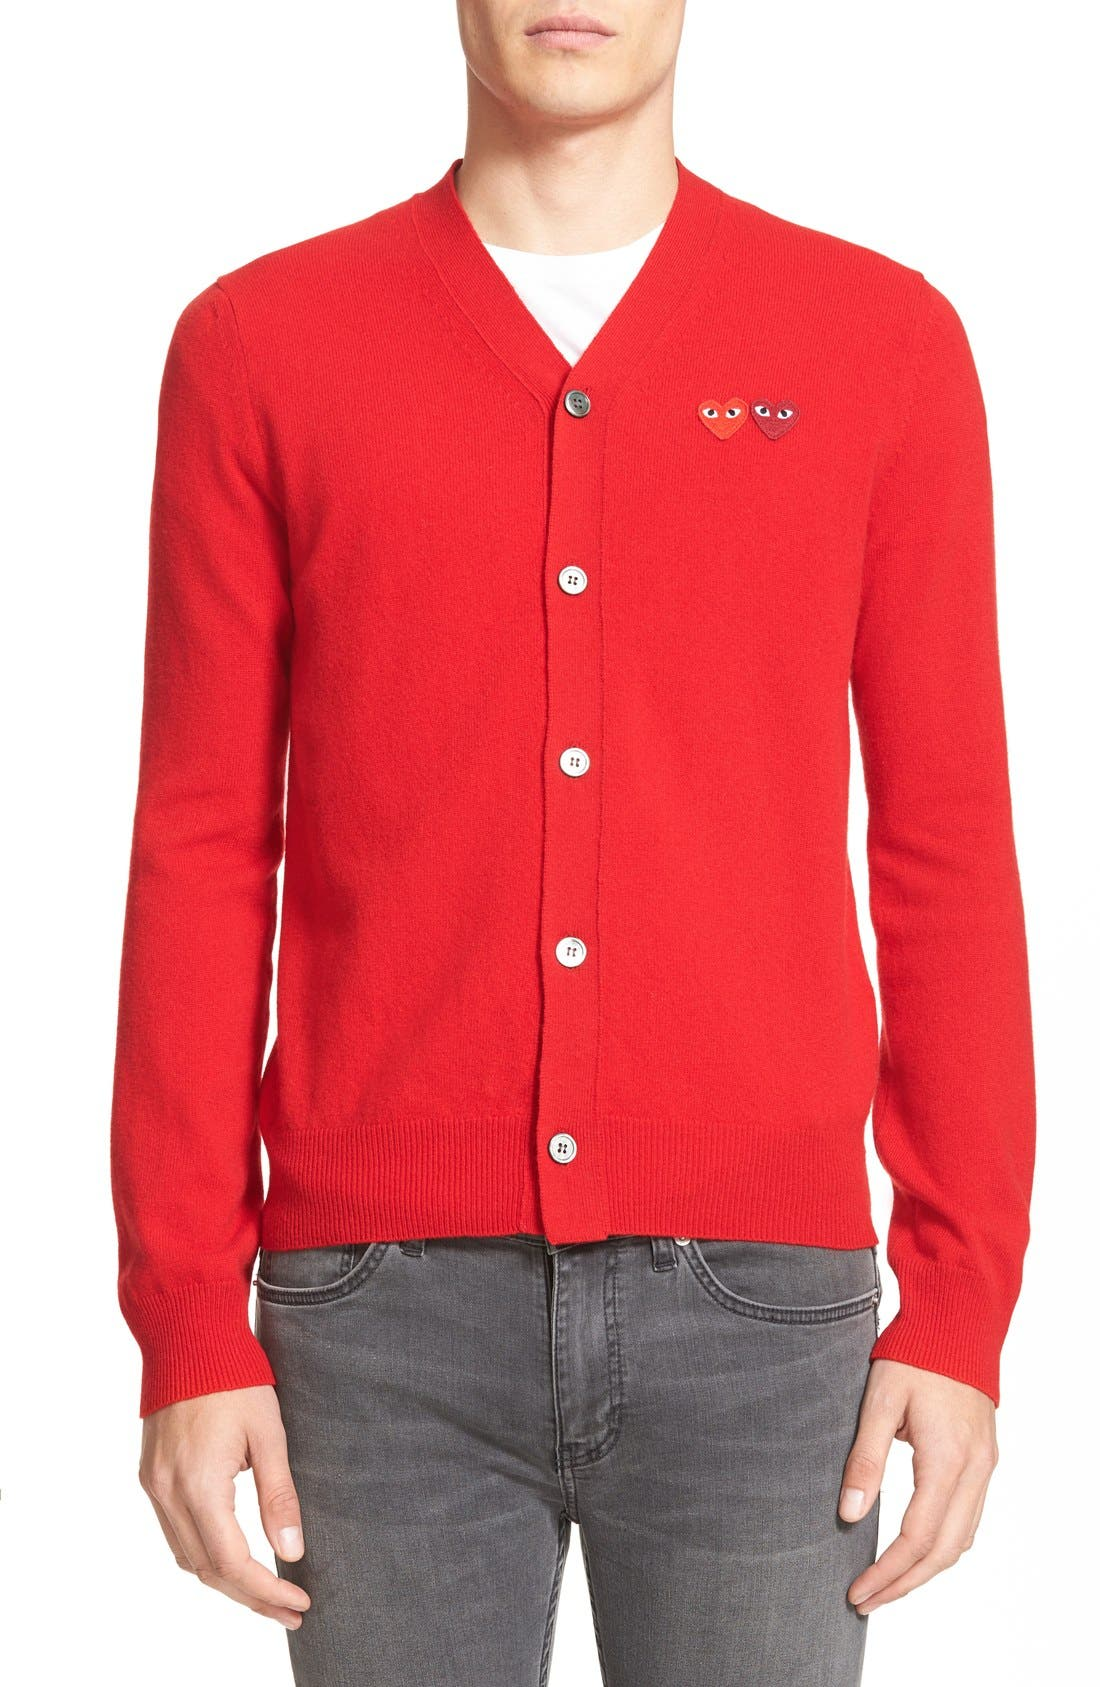 PLAY Double Heart Wool Cardigan,                         Main,                         color, Red